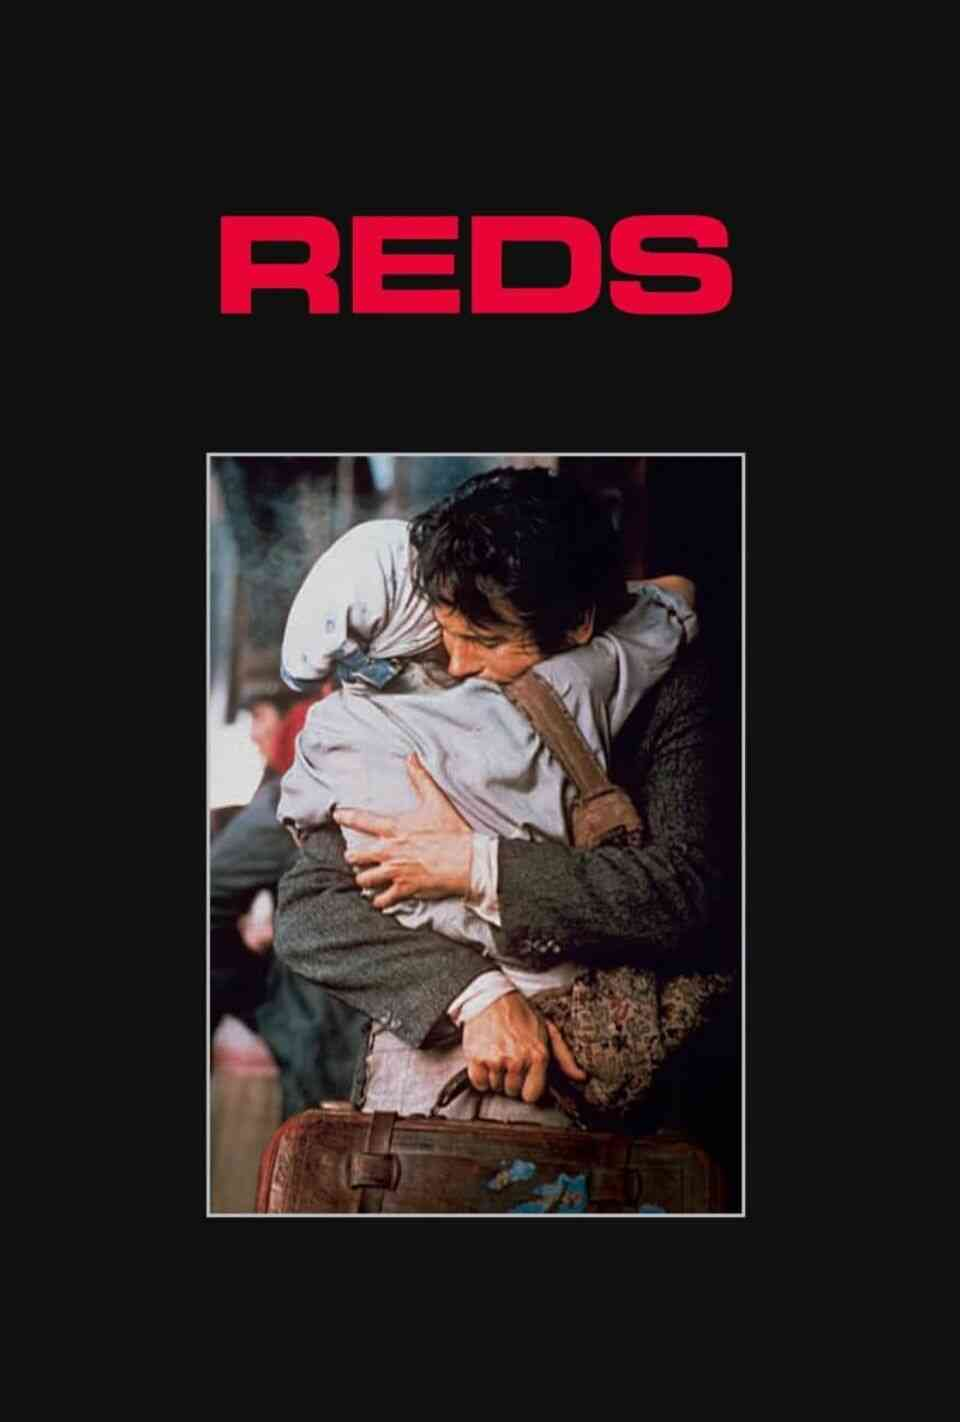 Reds Poster